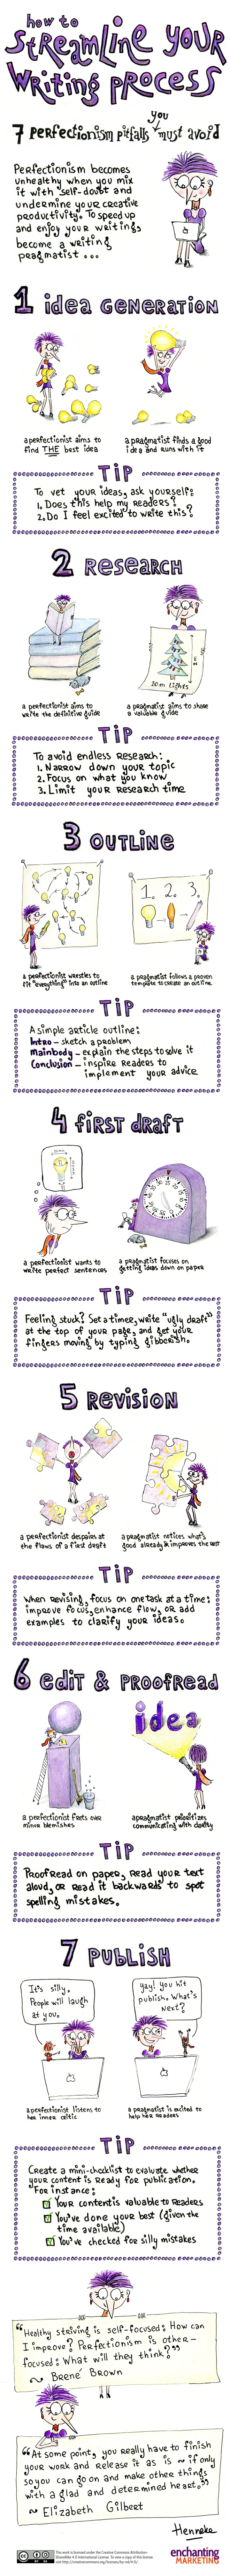 writing-process-infographic.jpg  Stop Obsessing: Here Are 7 Areas Where Perfectionism Hinders Good Writing [Infographic] writing process infographic